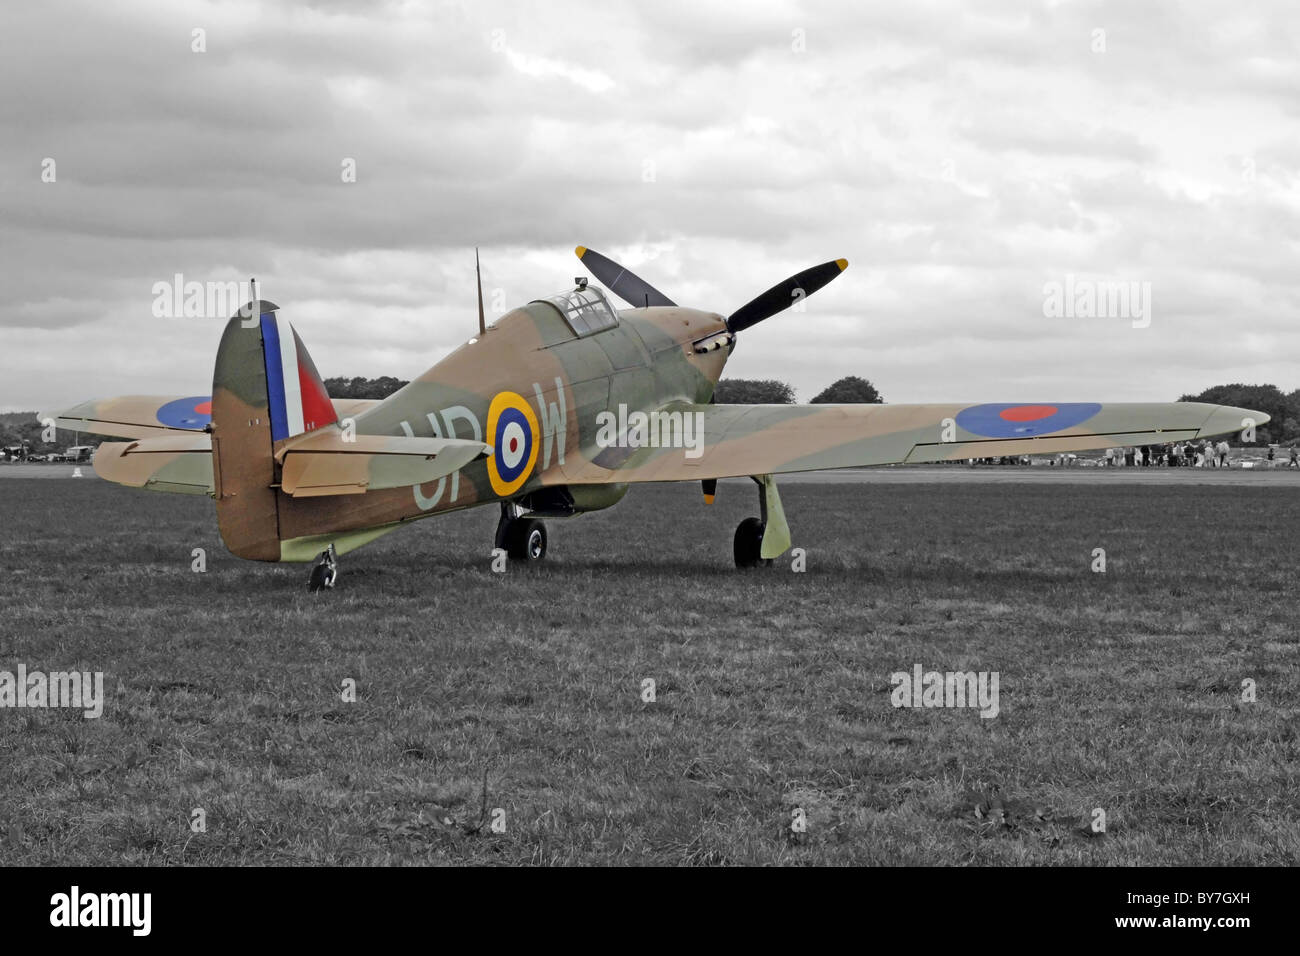 Retro Tinted black and white image of a WW2 RAF Hawker Hurricane Fighter Plane - Stock Image